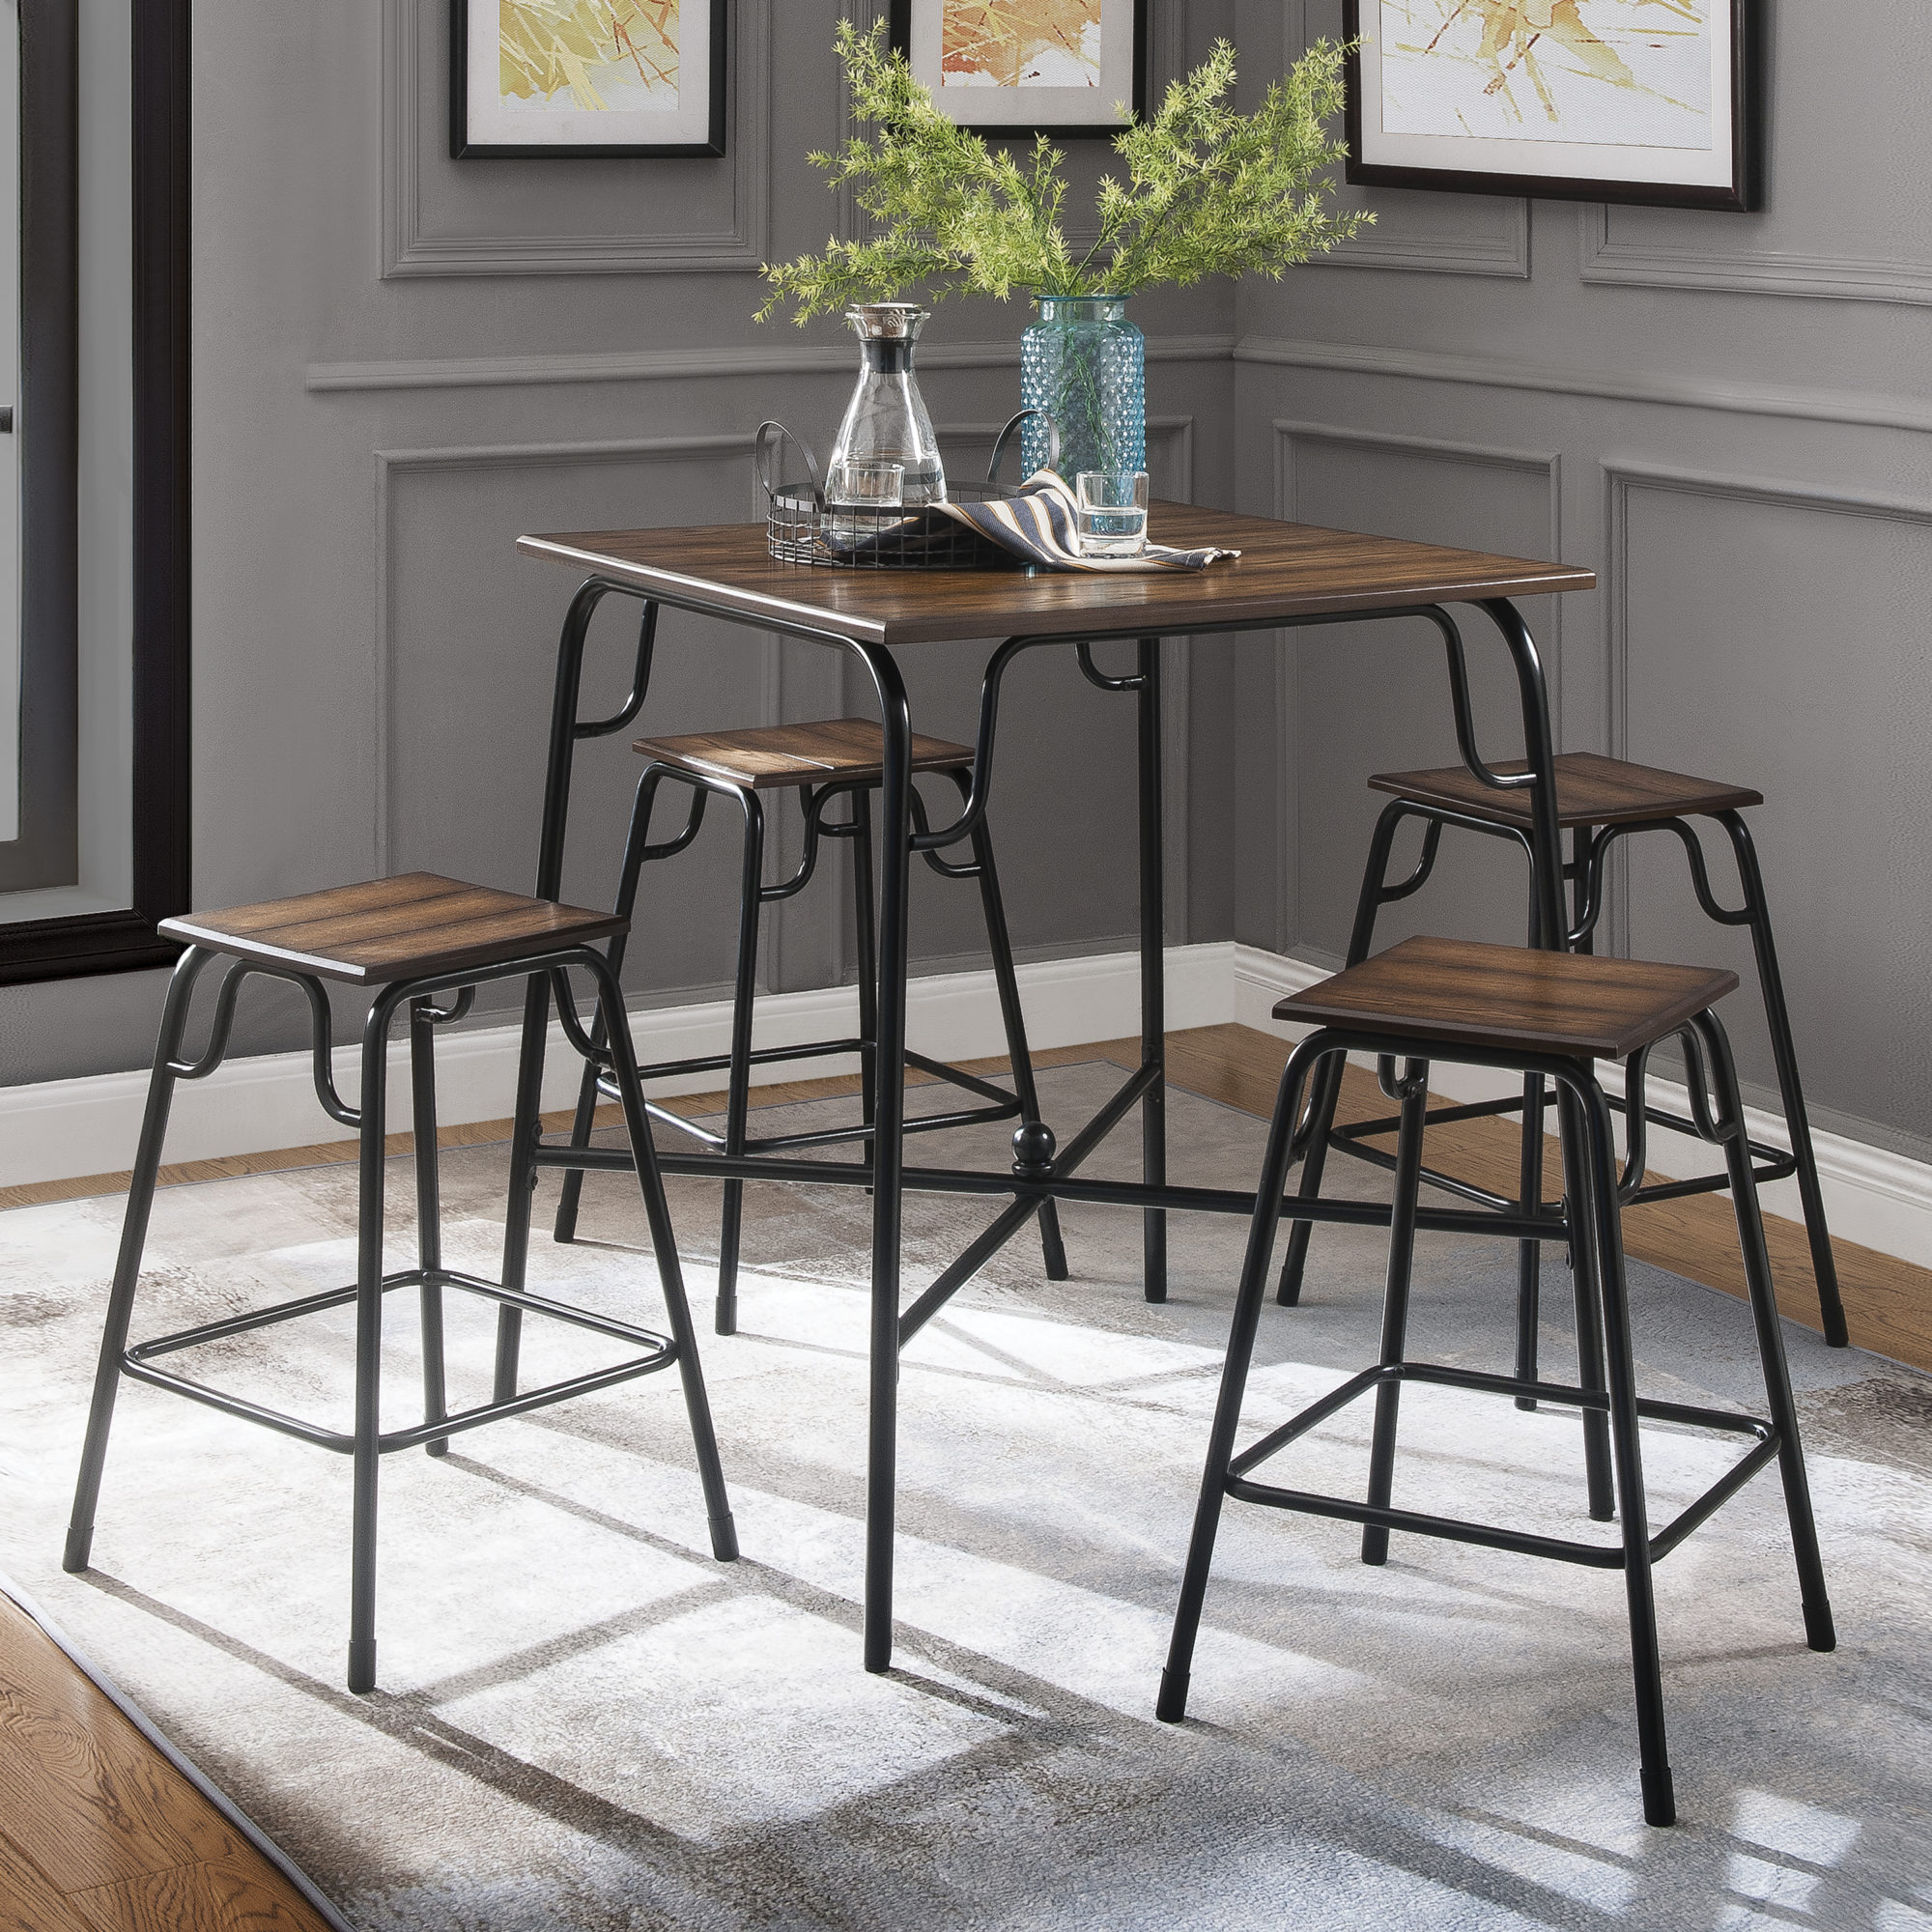 Acme Hachi 5 Piece Counter Height Dining Set $99 {Reg $199}